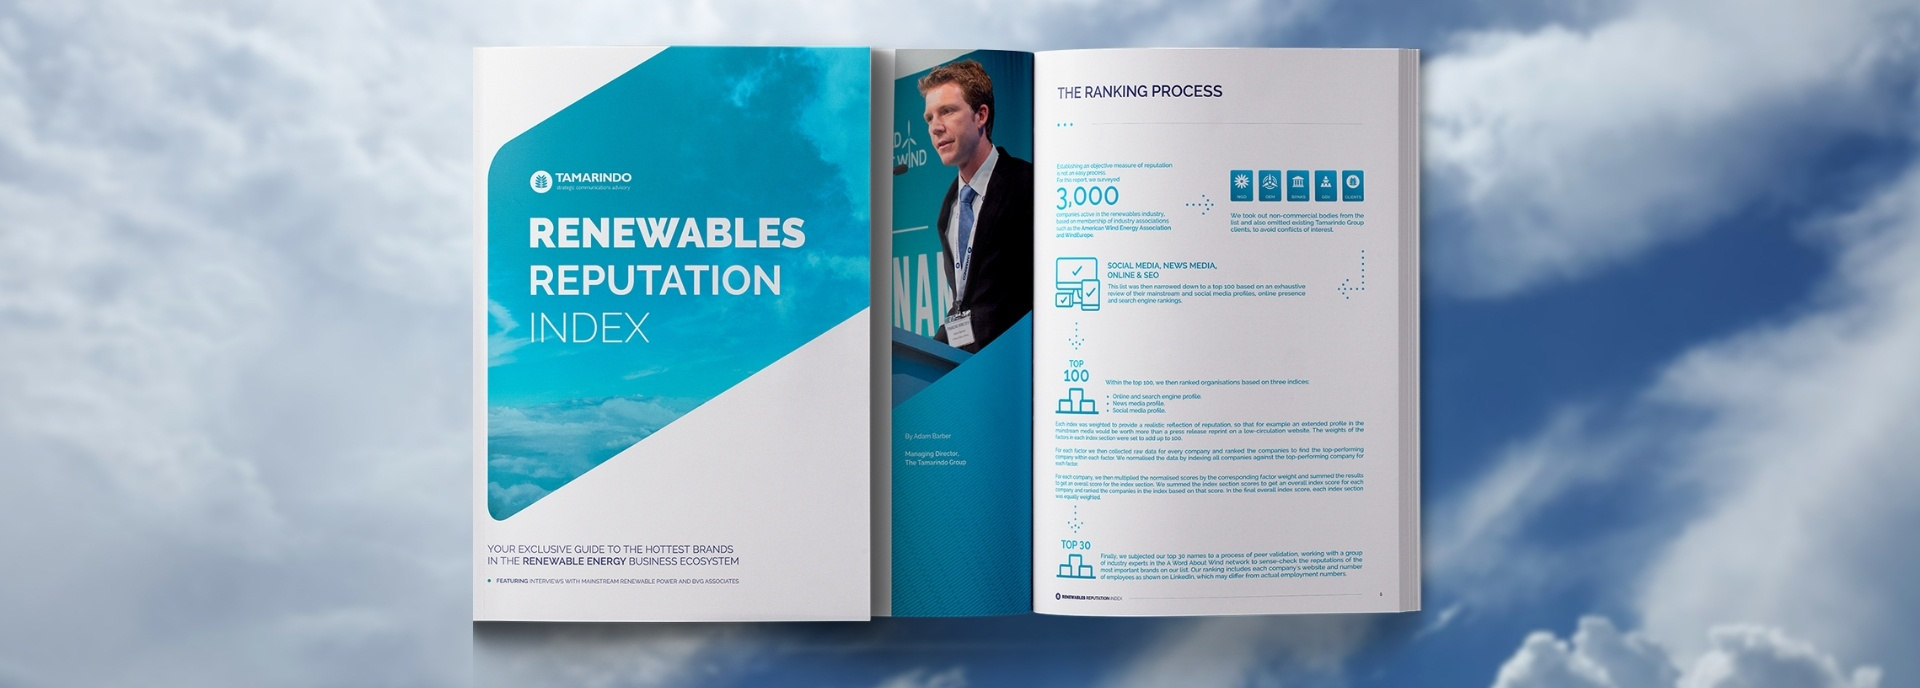 Renewables Reputation Index report